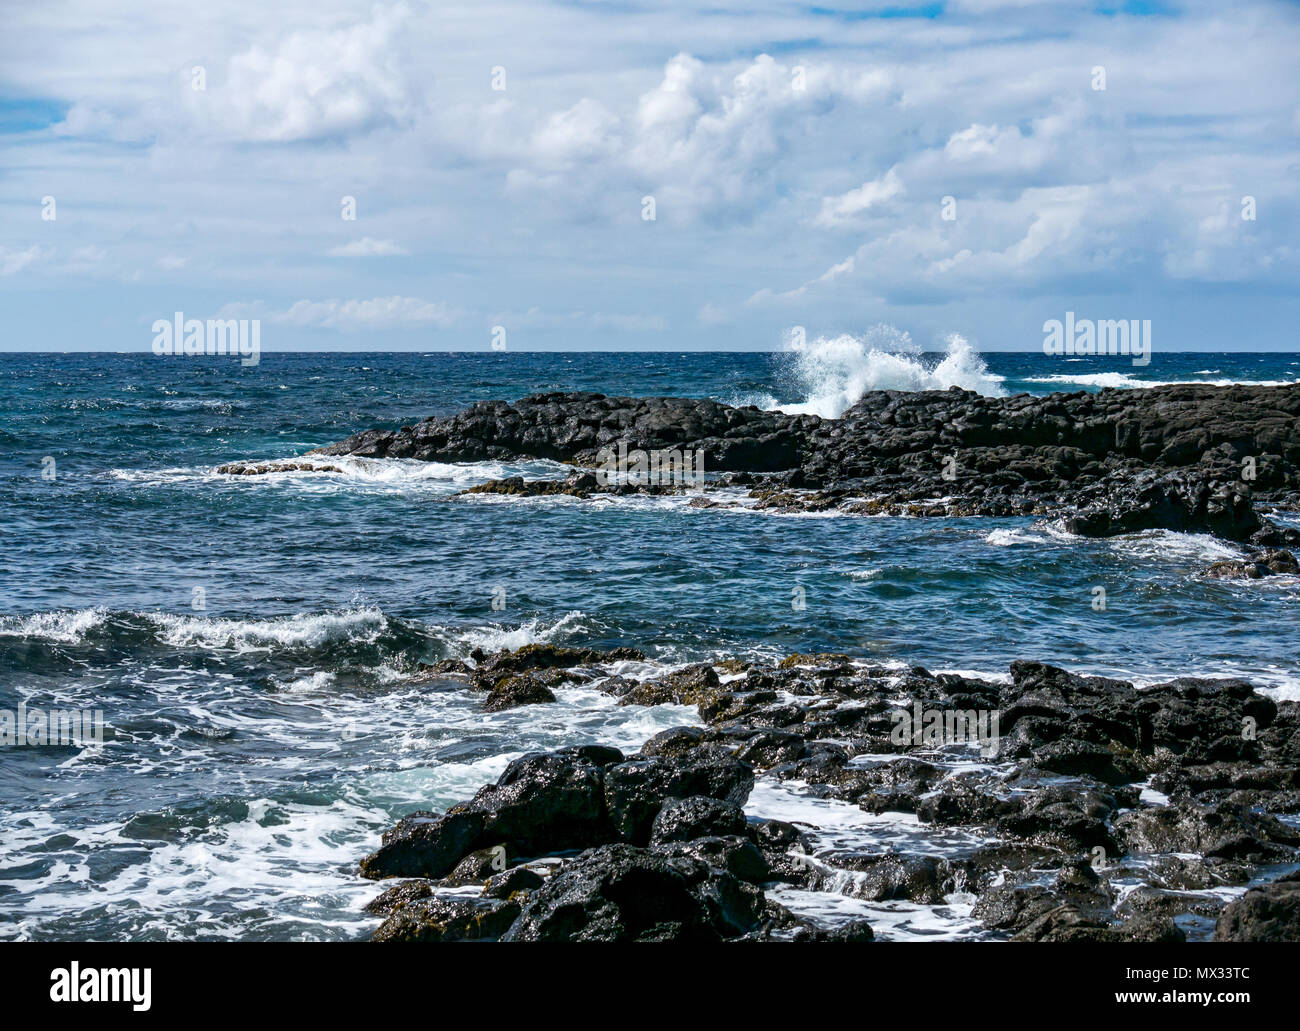 Waves breaking on rocky shore, Easter Island, Rapa Nui, Chile - Stock Image